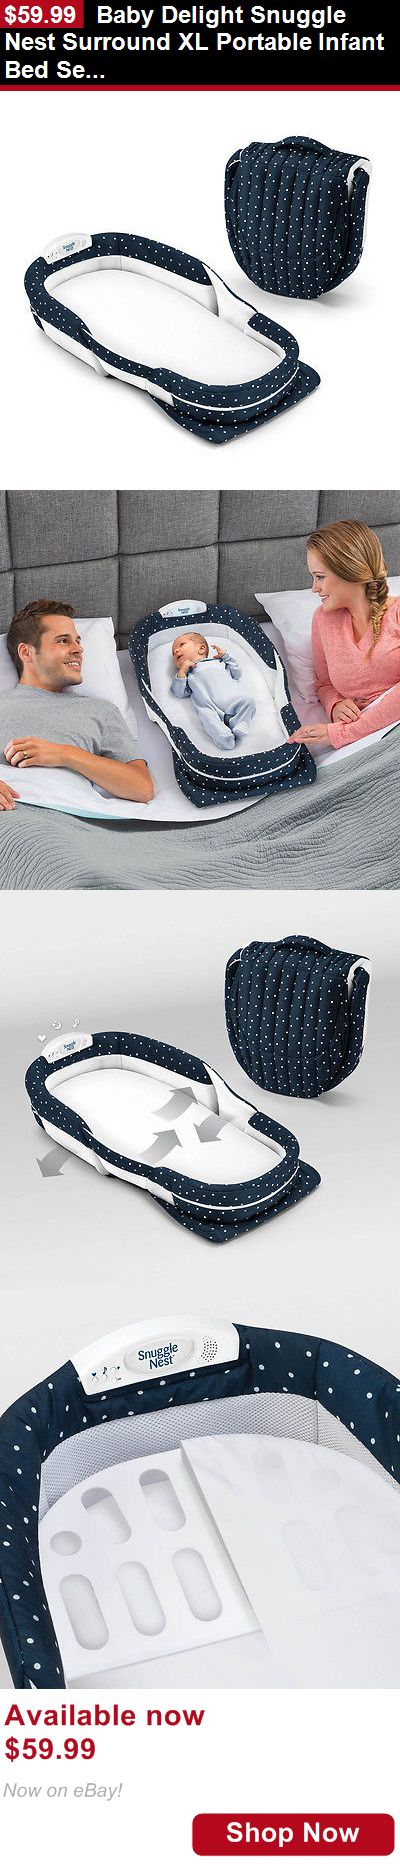 Baby Co-Sleepers: Baby Delight Snuggle Nest Surround Xl Portable Infant Bed Sea Navy Swiss New BUY IT NOW ONLY: $59.99